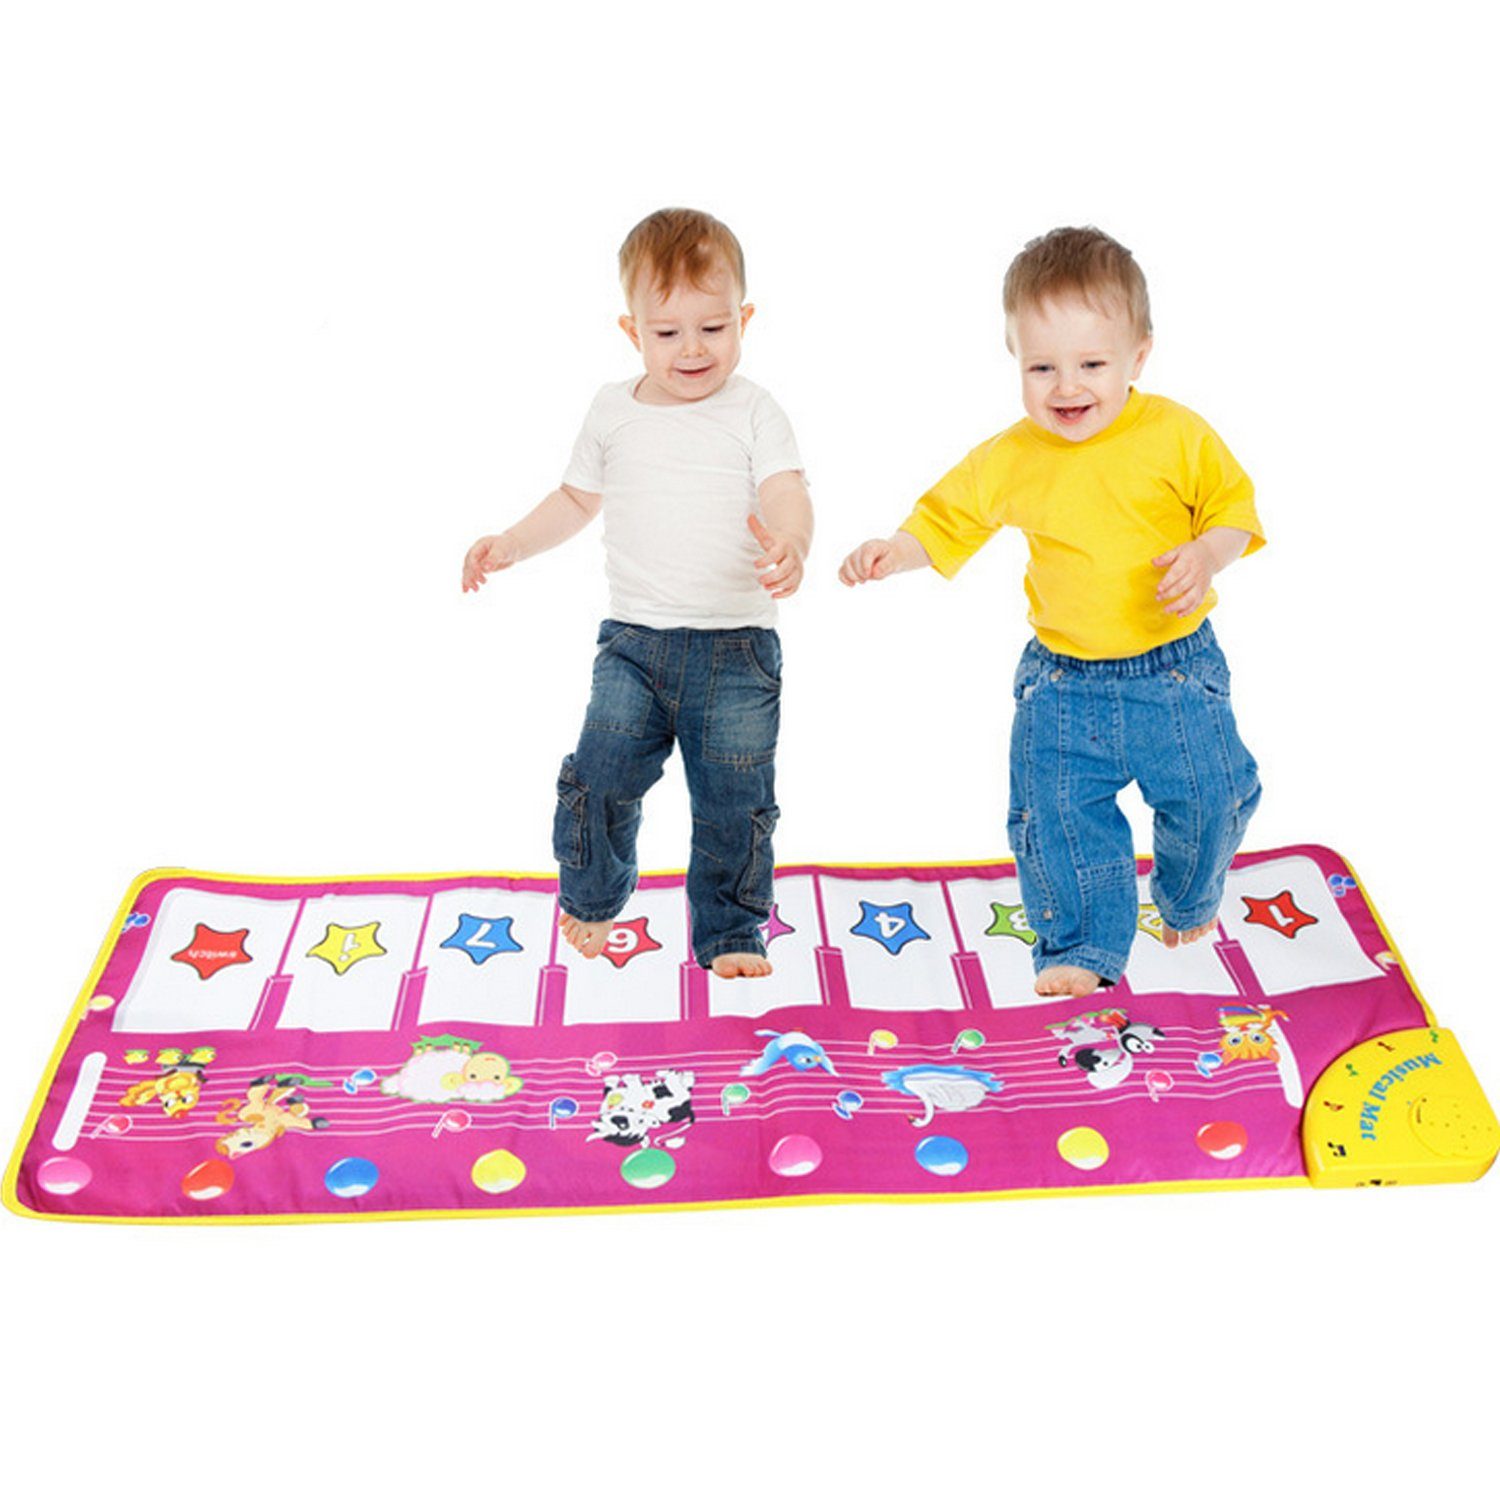 THE SAFETY ZONEY Piano Mat Musical Mat, Kingseye Baby Early Education Music Piano Keyboard Carpet Animal Blanket Touch Play Safety Learn Singing funny Toy for Kids Gift(purple)